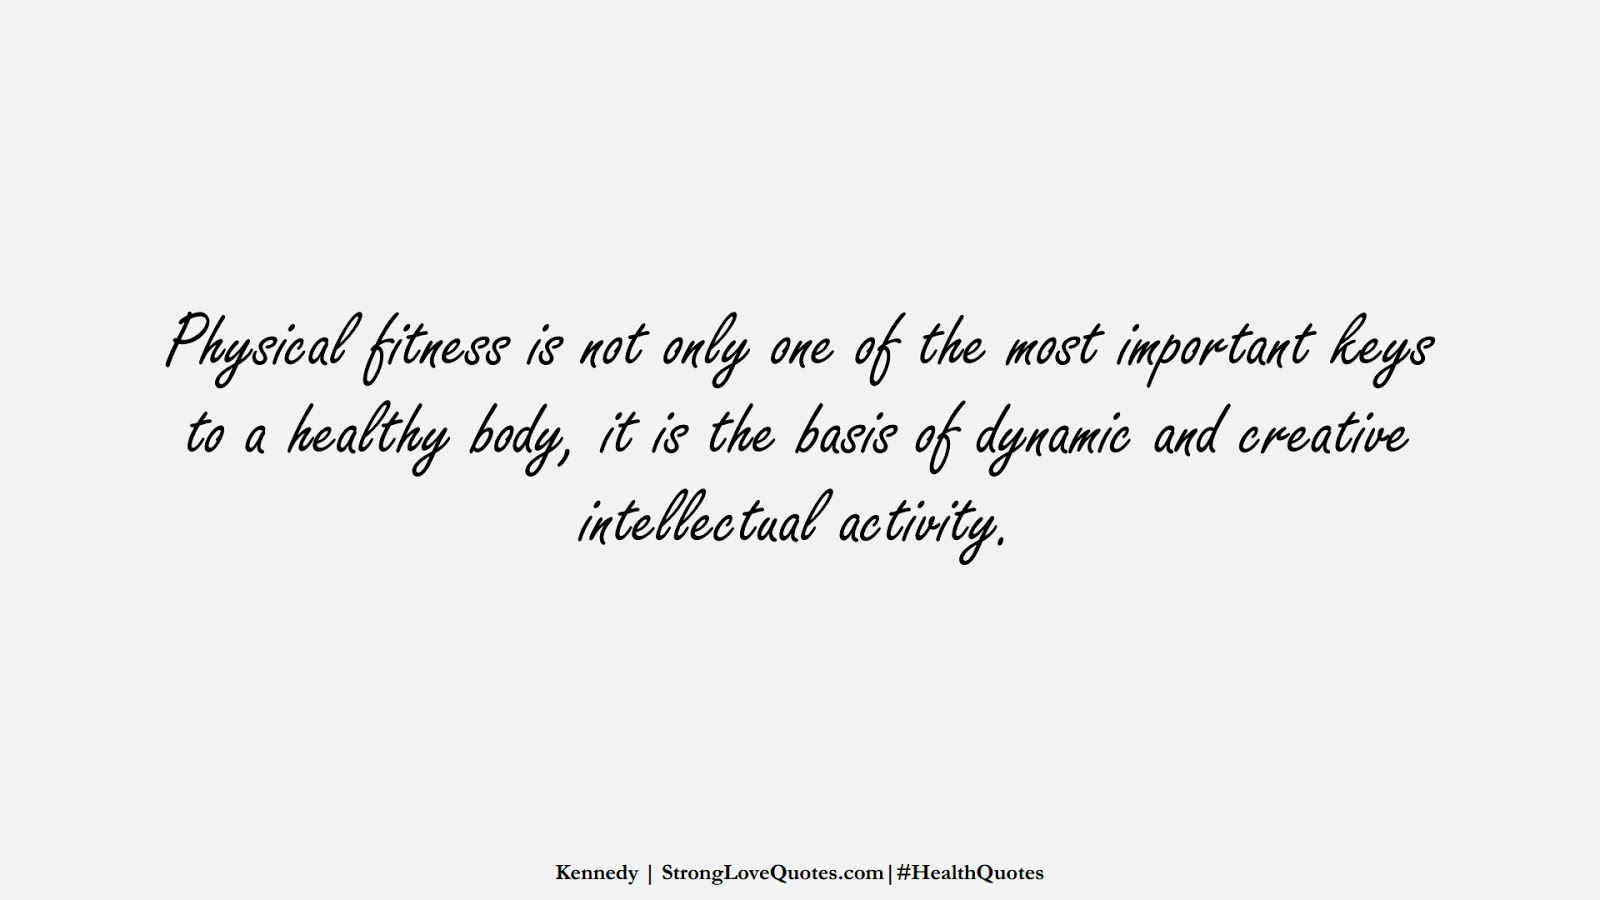 Physical fitness is not only one of the most important keys to a healthy body, it is the basis of dynamic and creative intellectual activity. (Kennedy);  #HealthQuotes